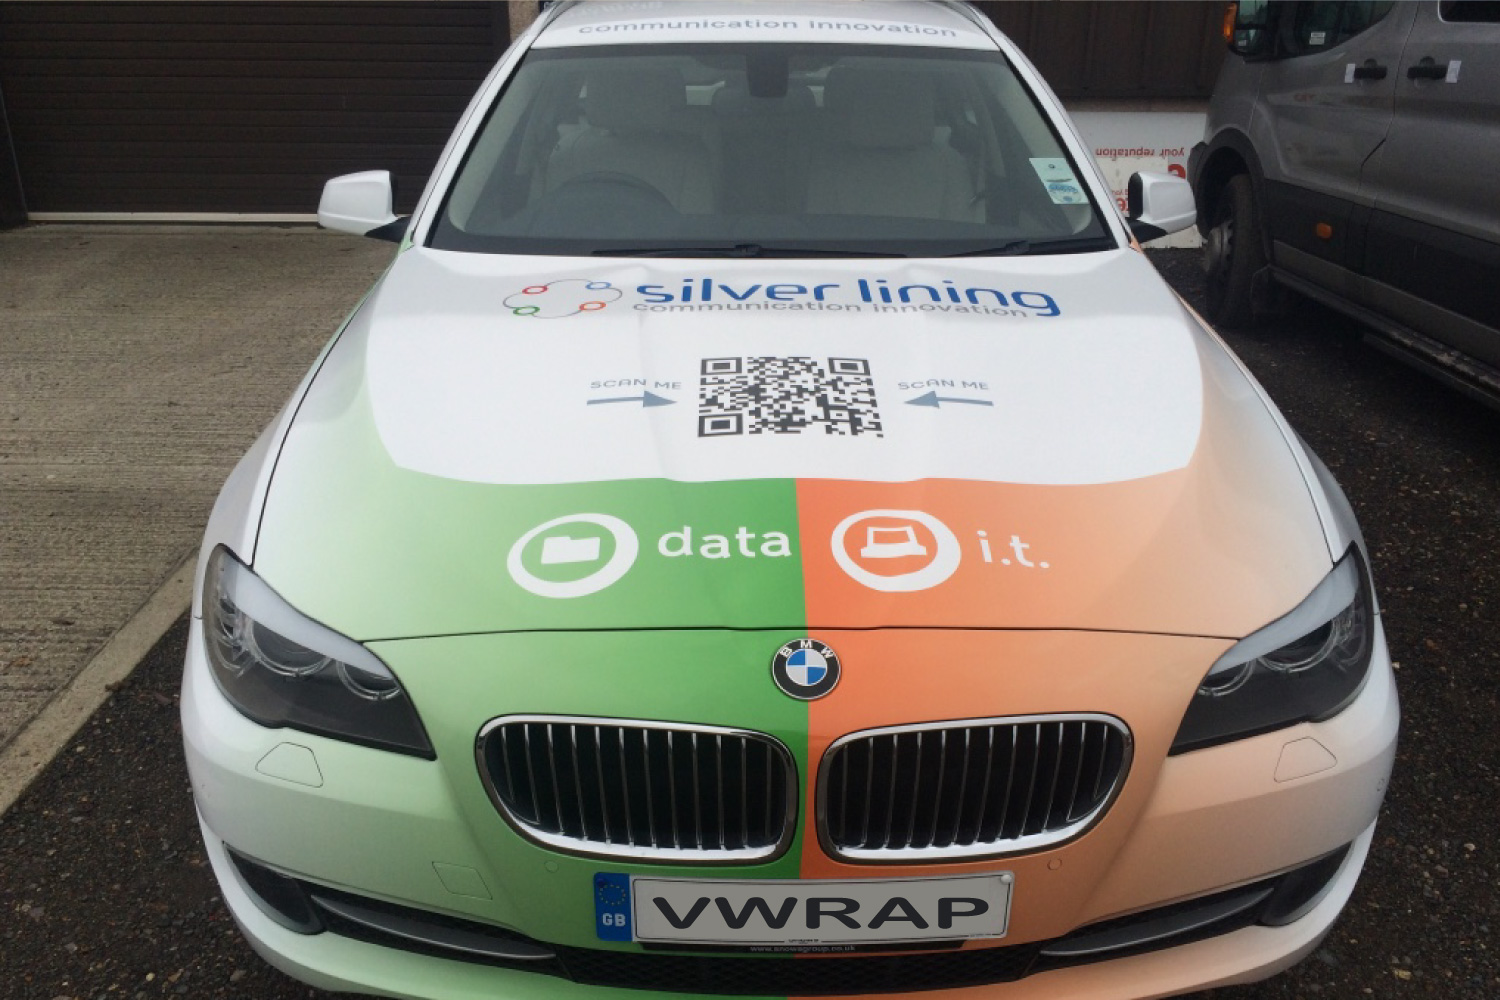 Full Digitally Printed BMW Estate Vinyl Wrap For Silver Lining Communication Innovation